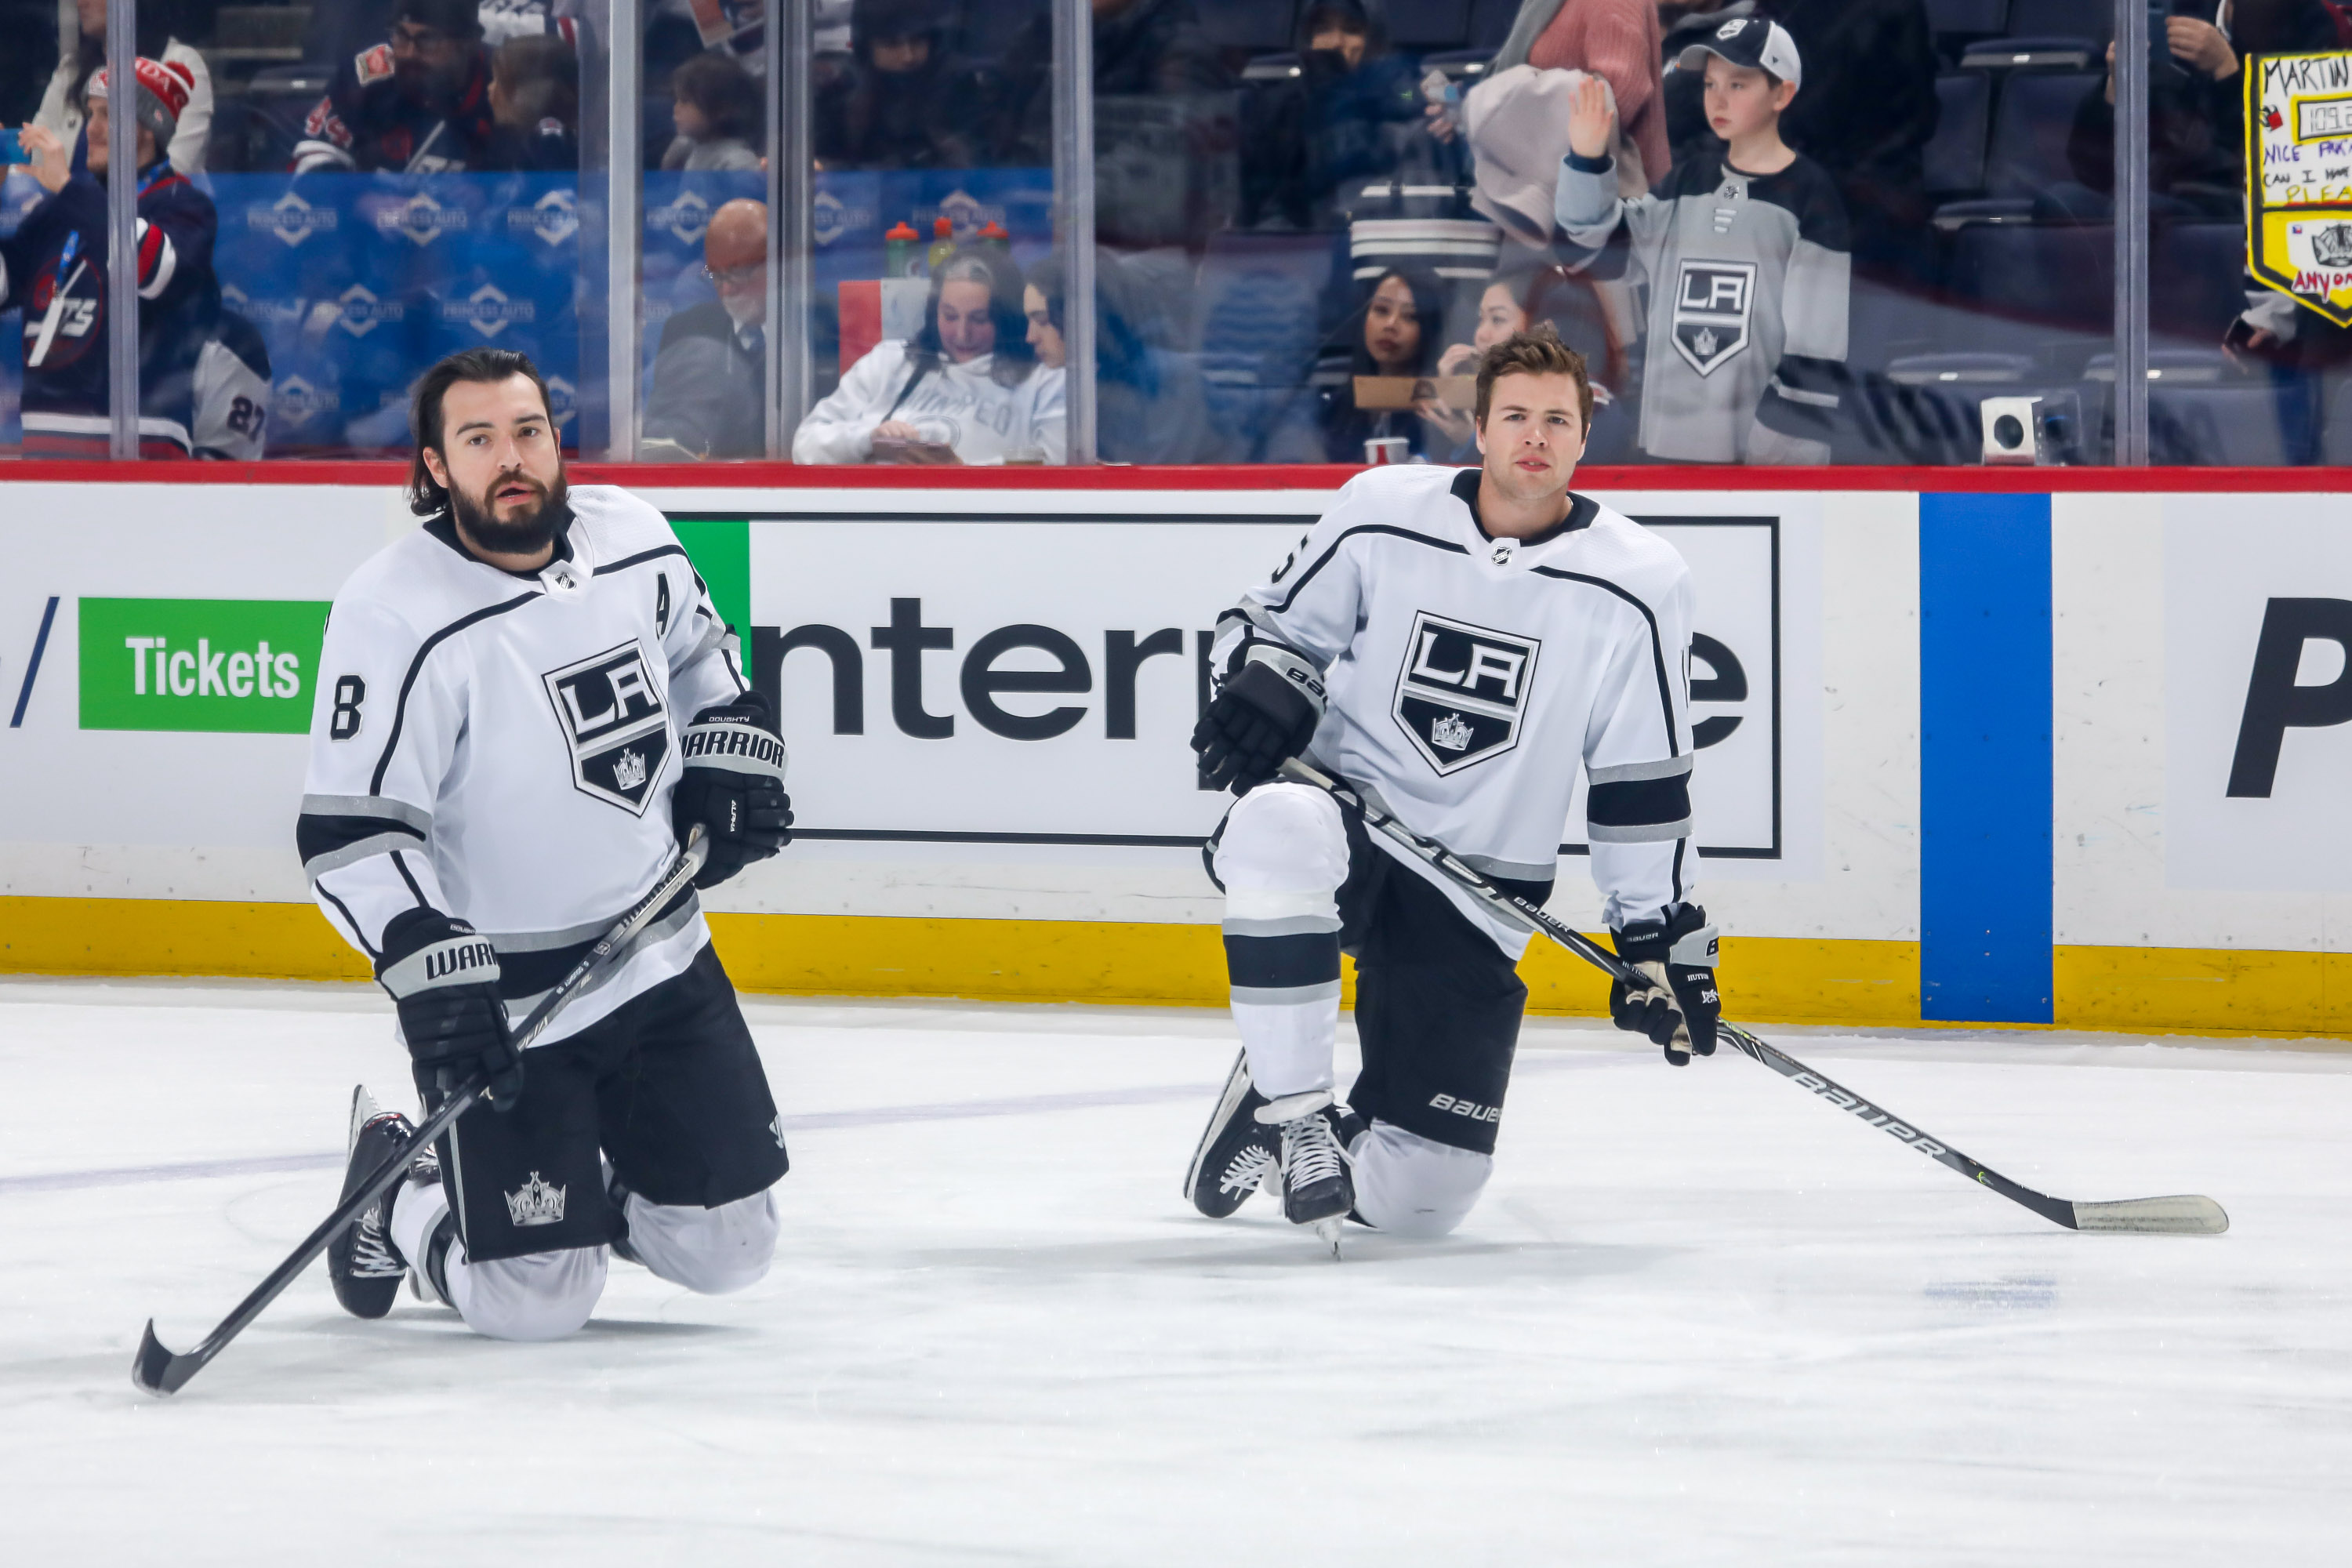 Drew Doughty #8 and Ben Hutton #15 of the Los Angeles Kings take part in the pre-game warm up prior to NHL action against the Winnipeg Jets at the Bell MTS Place on February 18, 2020 in Winnipeg, Manitoba, Canada.